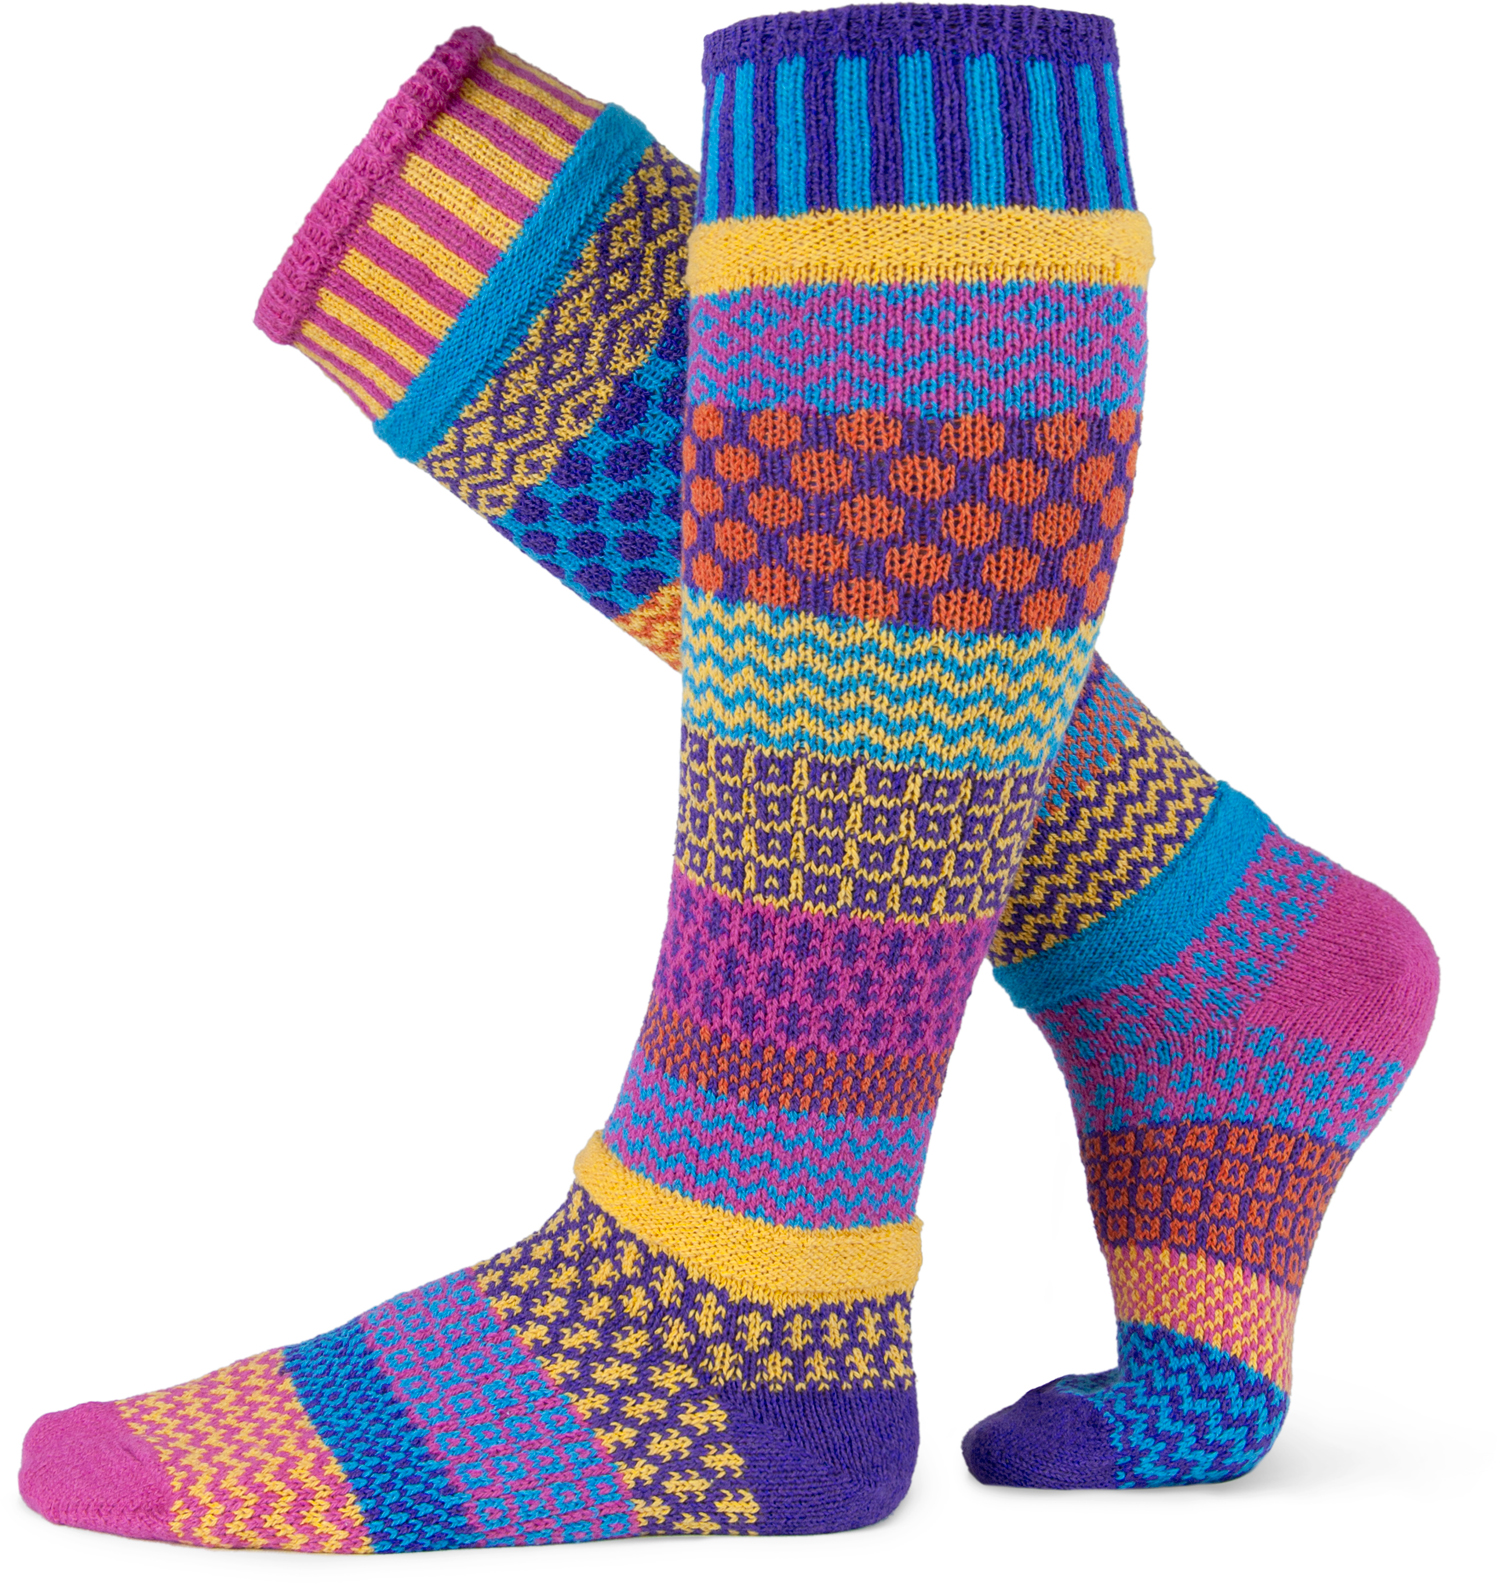 Made in USA socks: Eco-Friendly Socks from Solmate Socks #usalovelisted